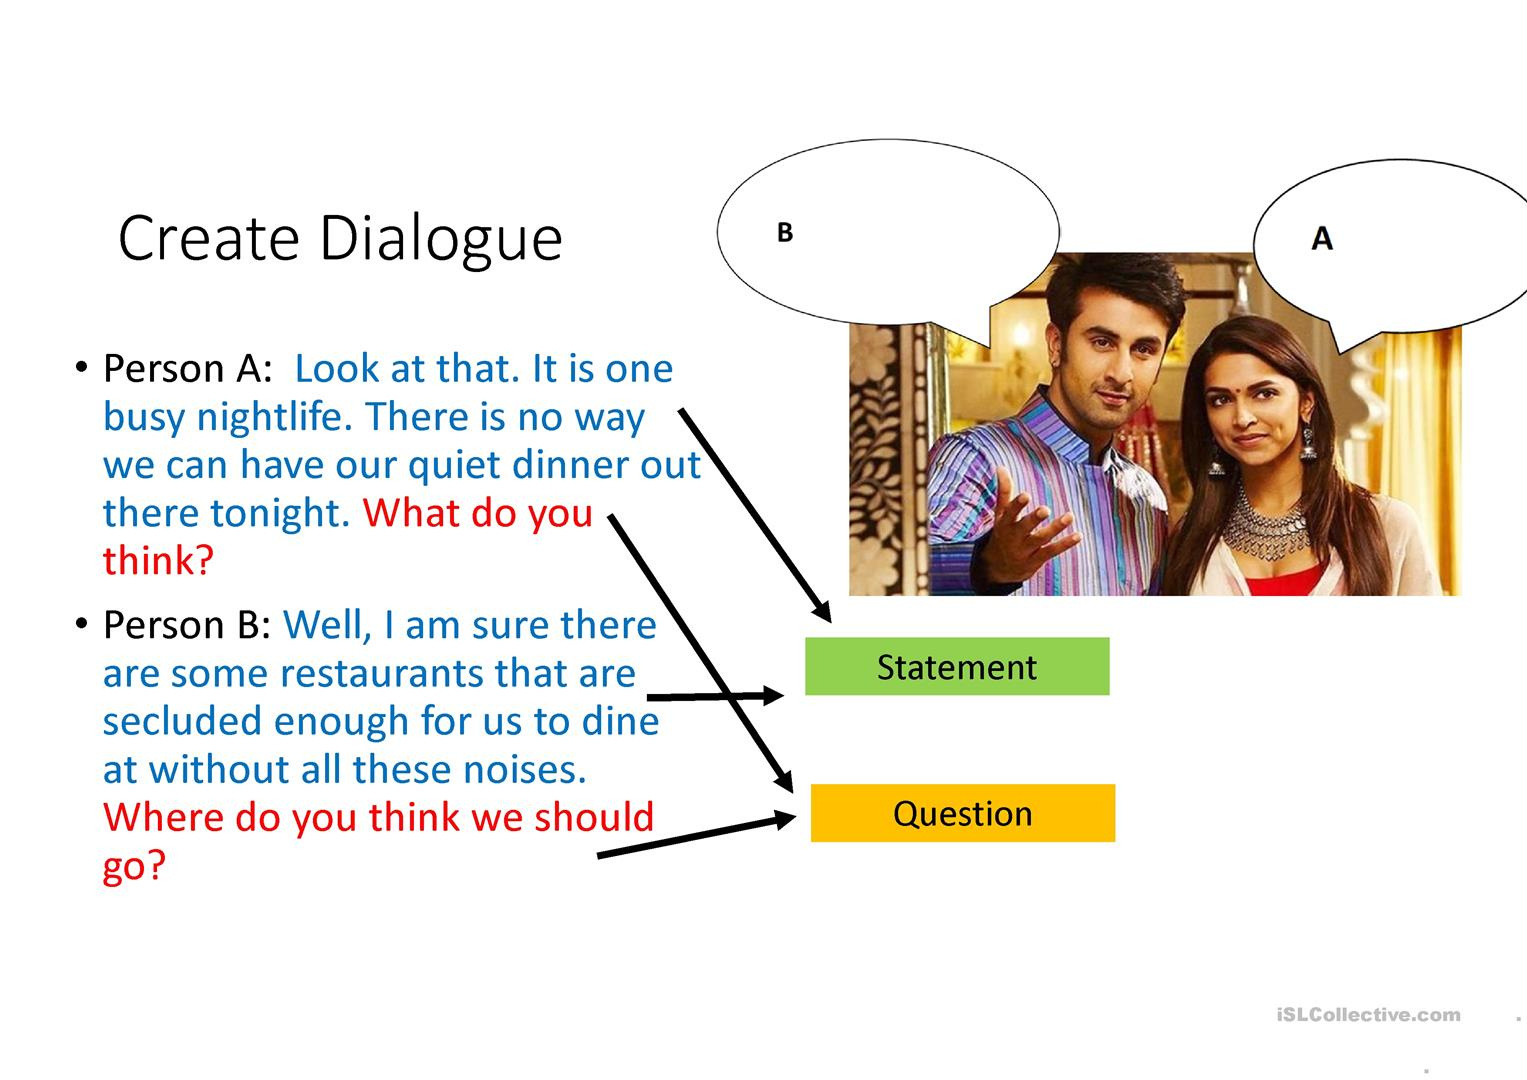 Create Dialogue Movie Scene Worksheet